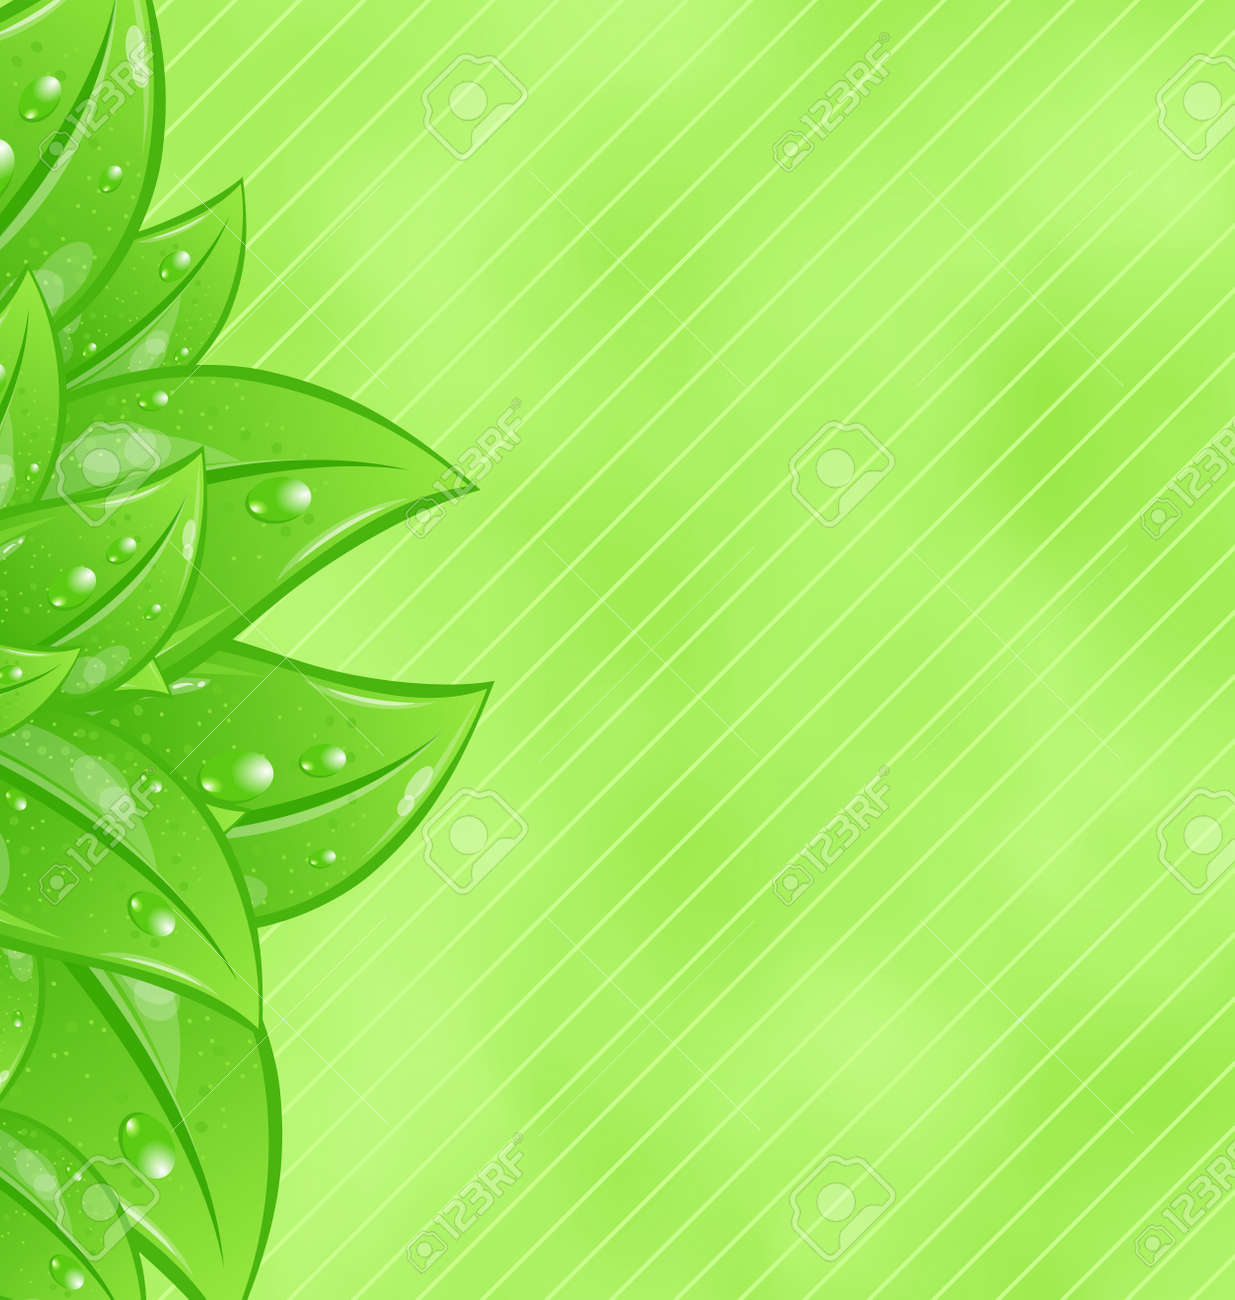 Illustration ecology background with eco green leaves Stock Illustration - 18434048